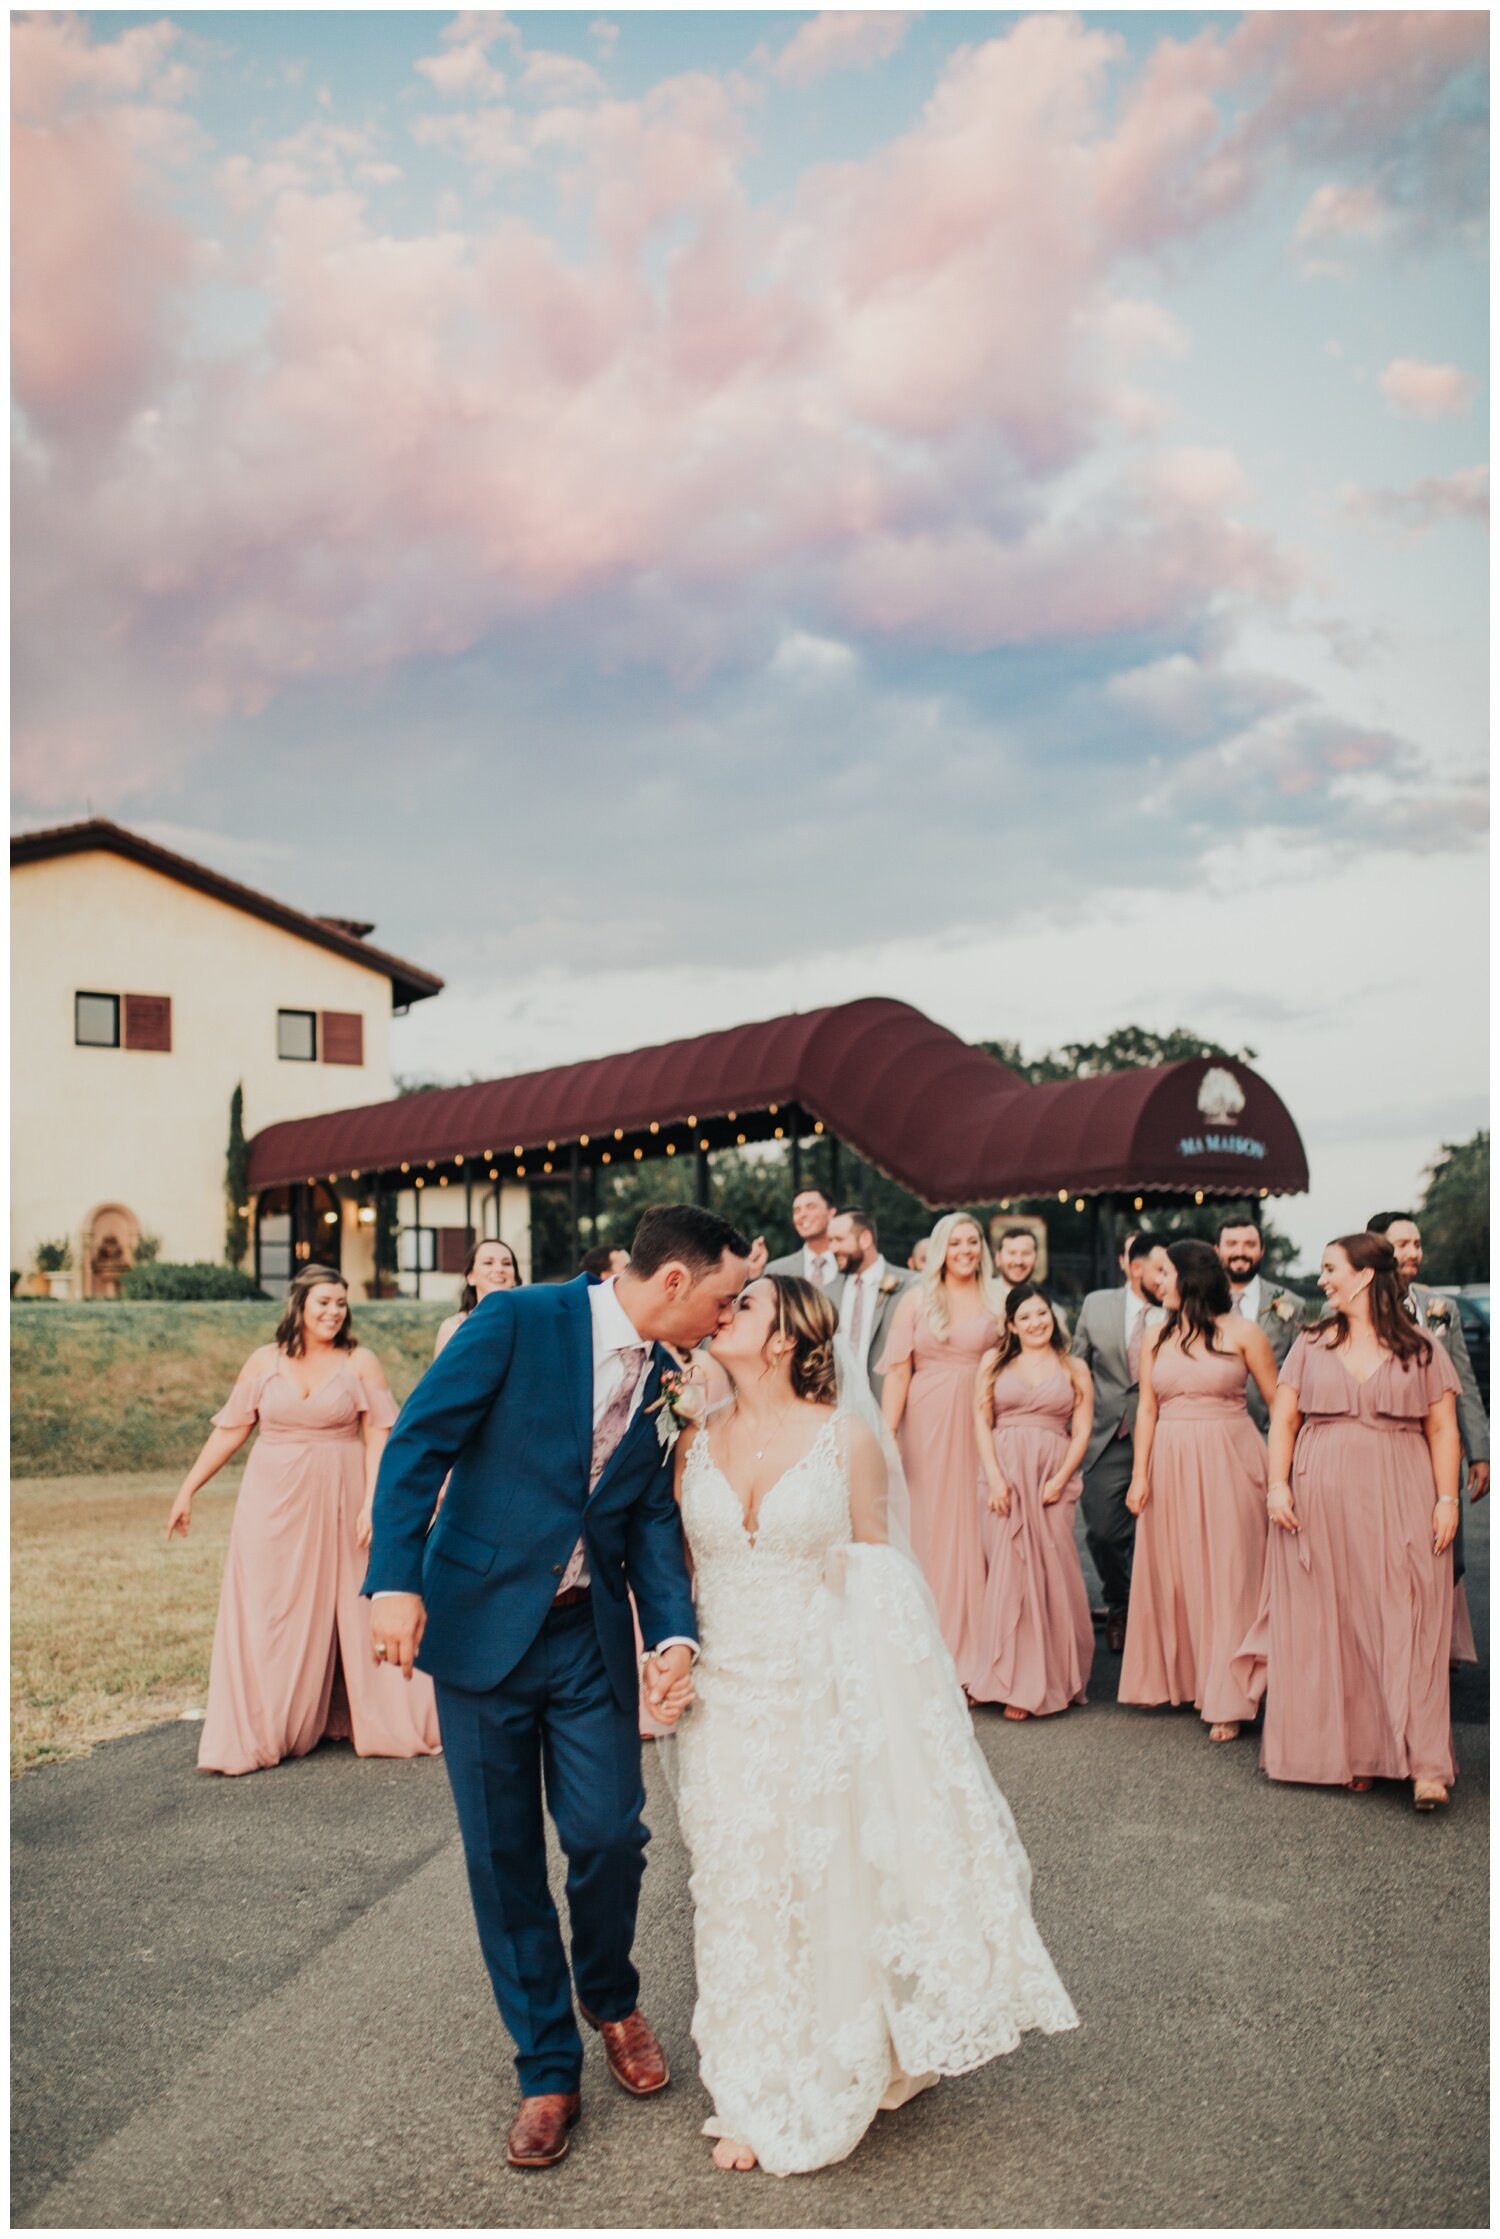 Modern Wedding at Ma Maison in Dripping Springs, Austin, Texas (Joshua and Parisa – Austin Wedding Photographer)_0029.jpg